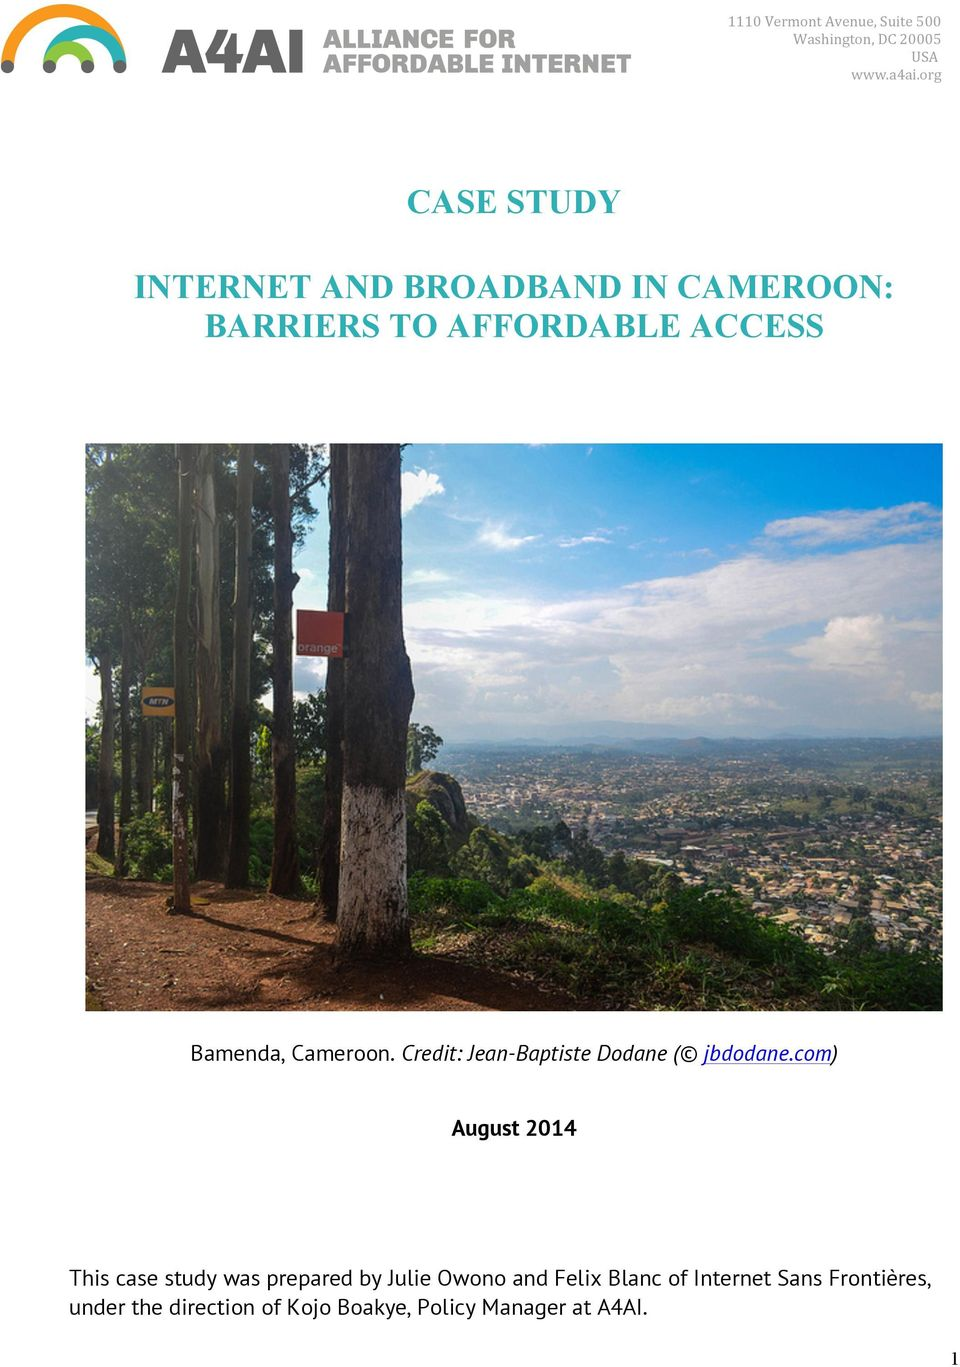 com) August 2014 This case study was prepared by Julie Owono and Felix